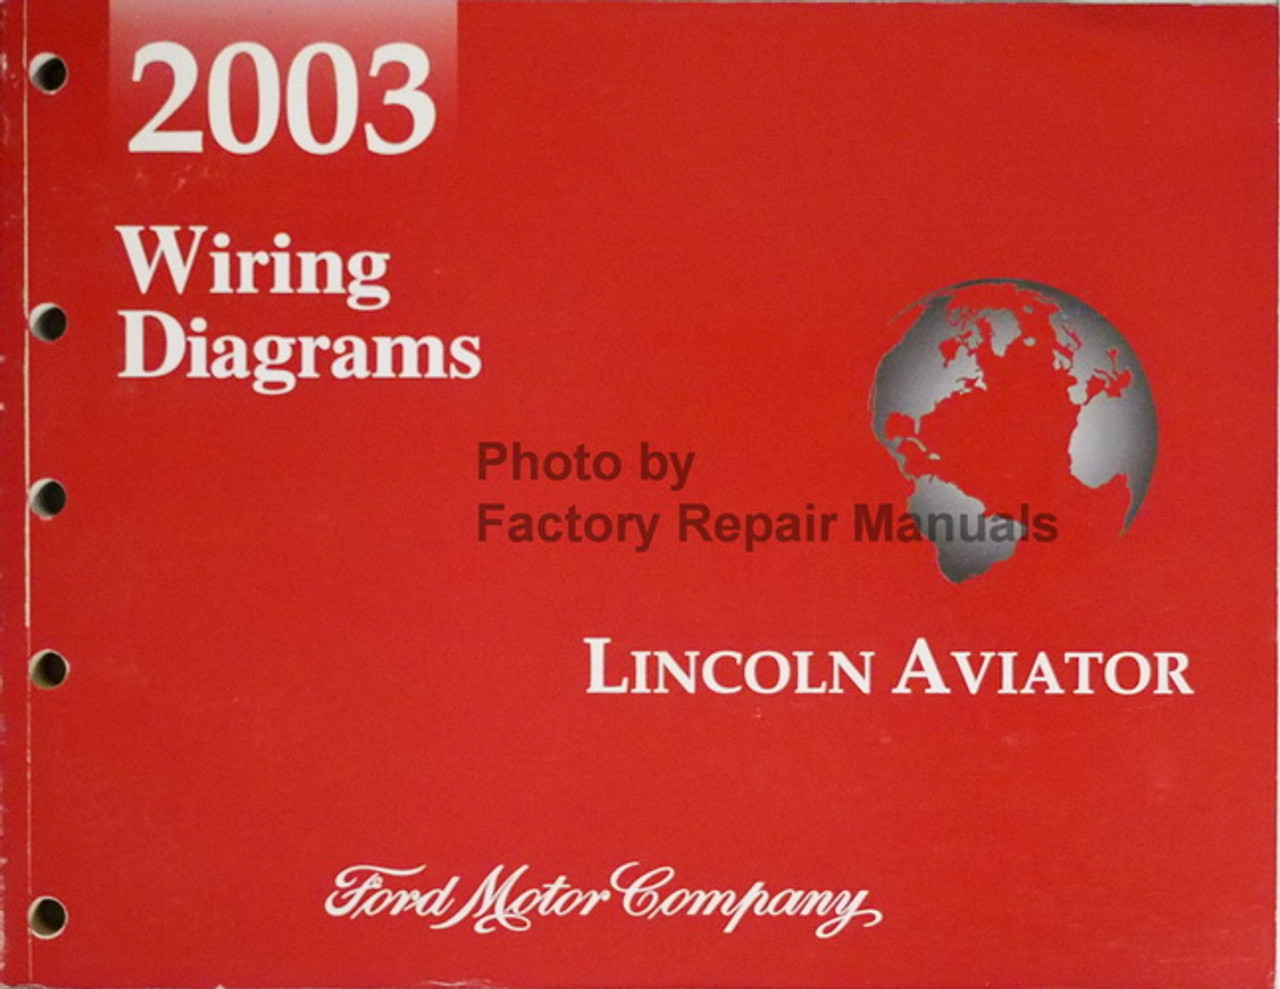 2003 Lincoln Aviator Electrical Wiring Diagrams Original Ford Manual